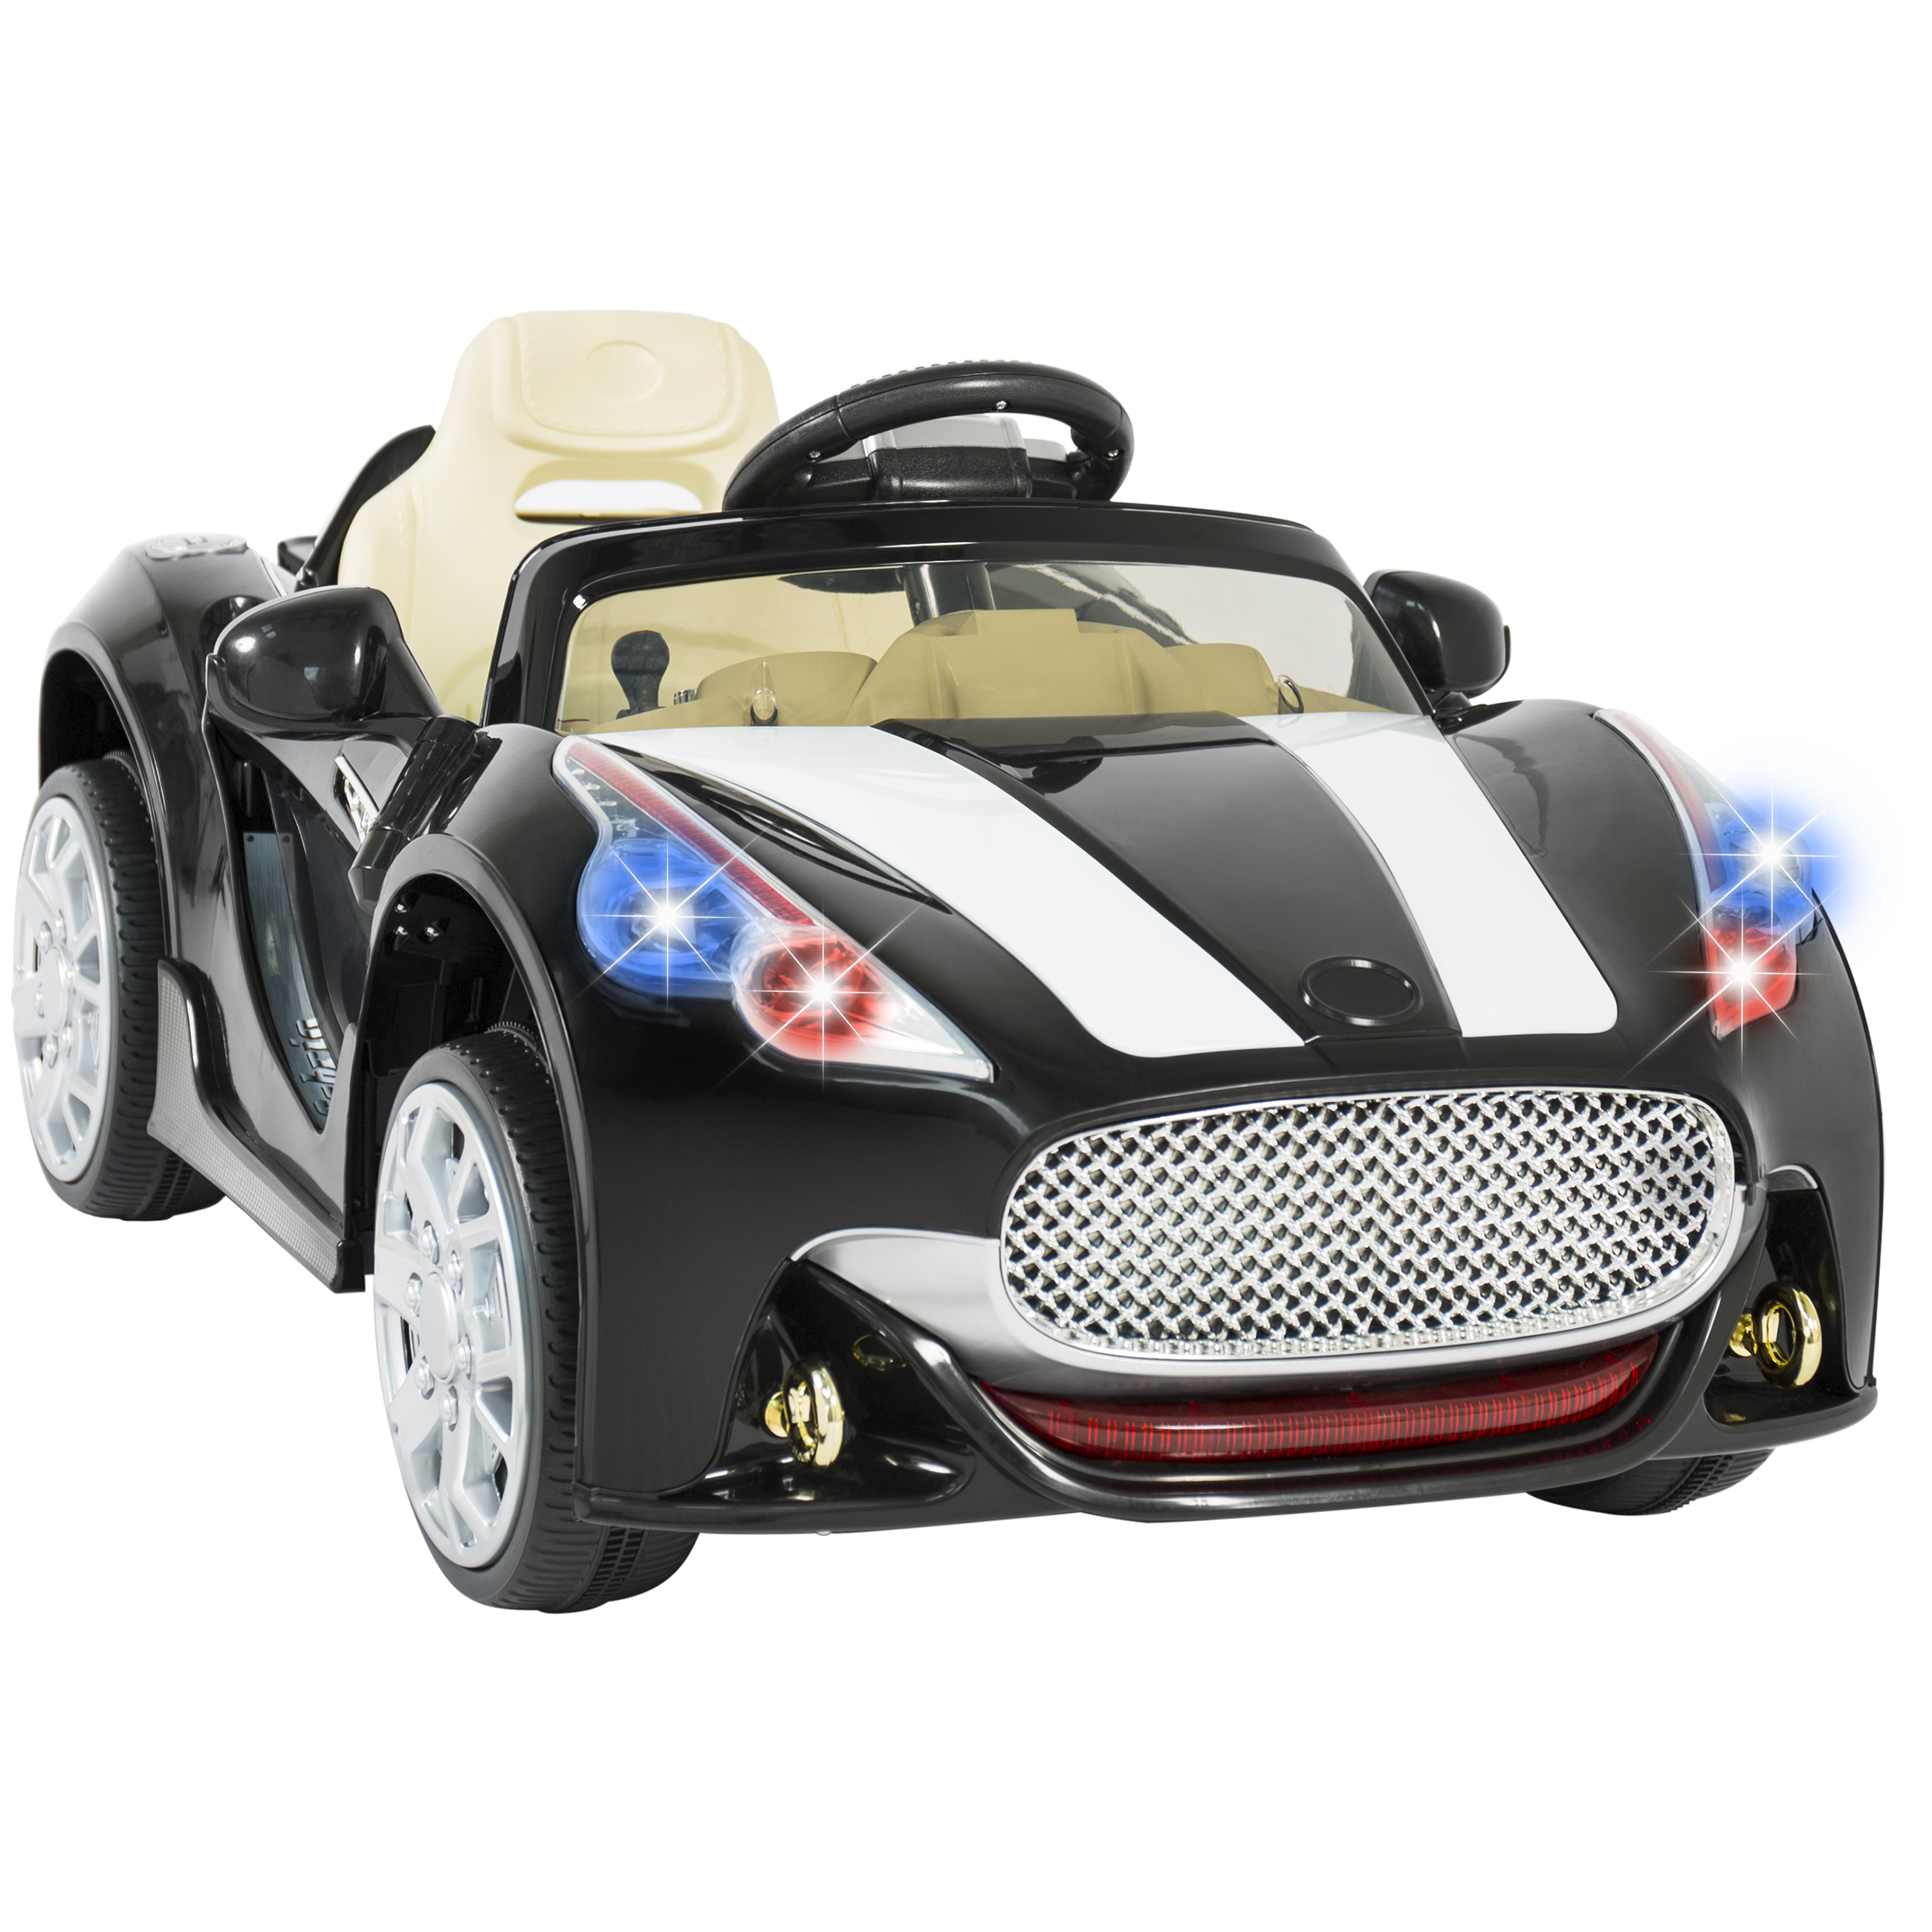 Best Choice Products 12V Ride on Car Kids RC Remote Control Electric Battery Power W/ Radio & MP3 BK